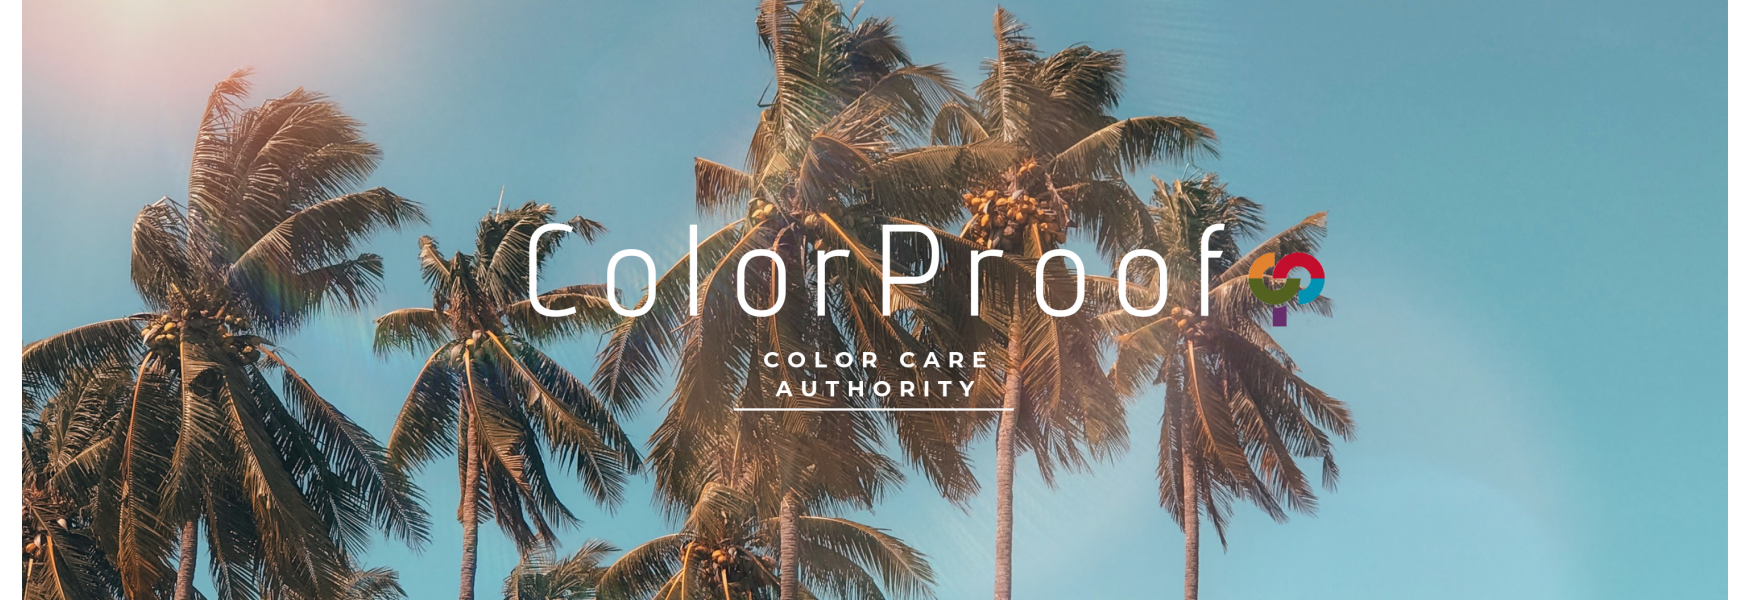 ColorProof Webpage Banner #1